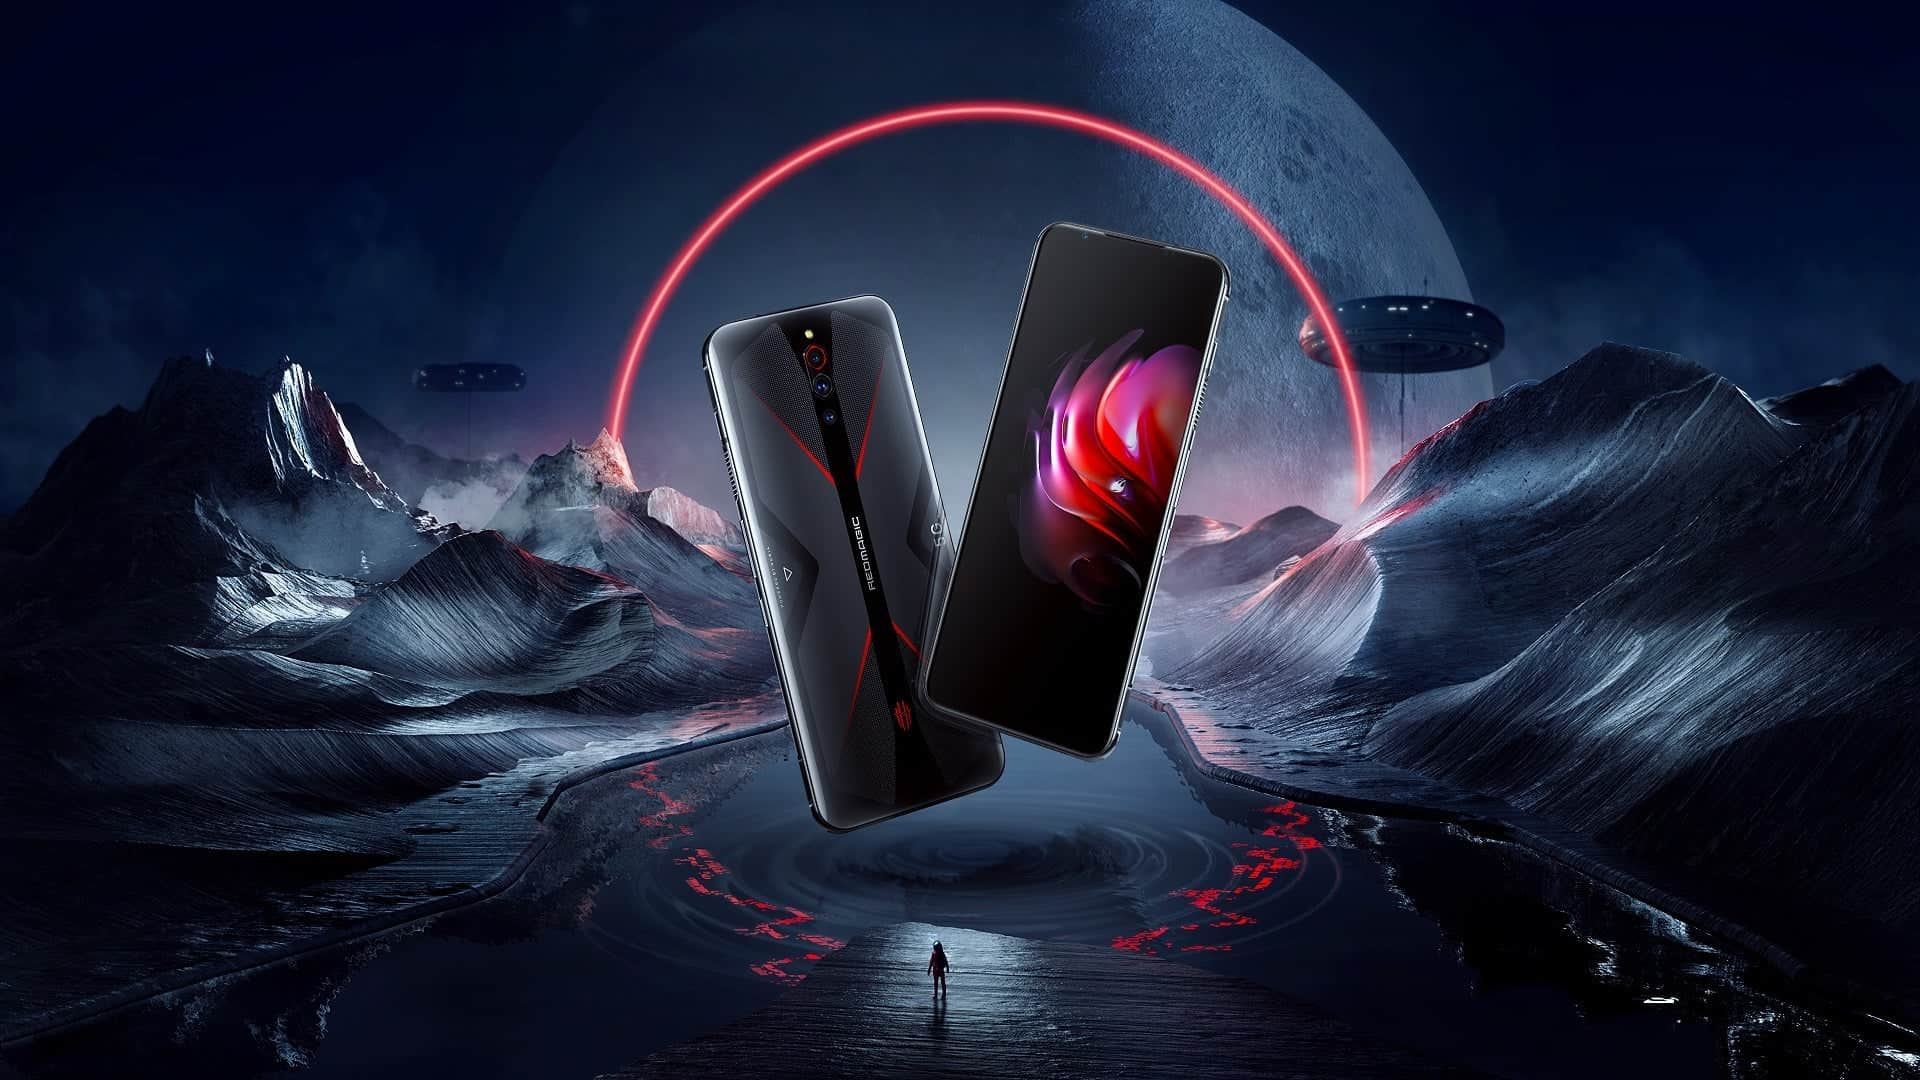 RedMagic 5G is Official with 144Hz Display & 64MP Sony Triple Camera